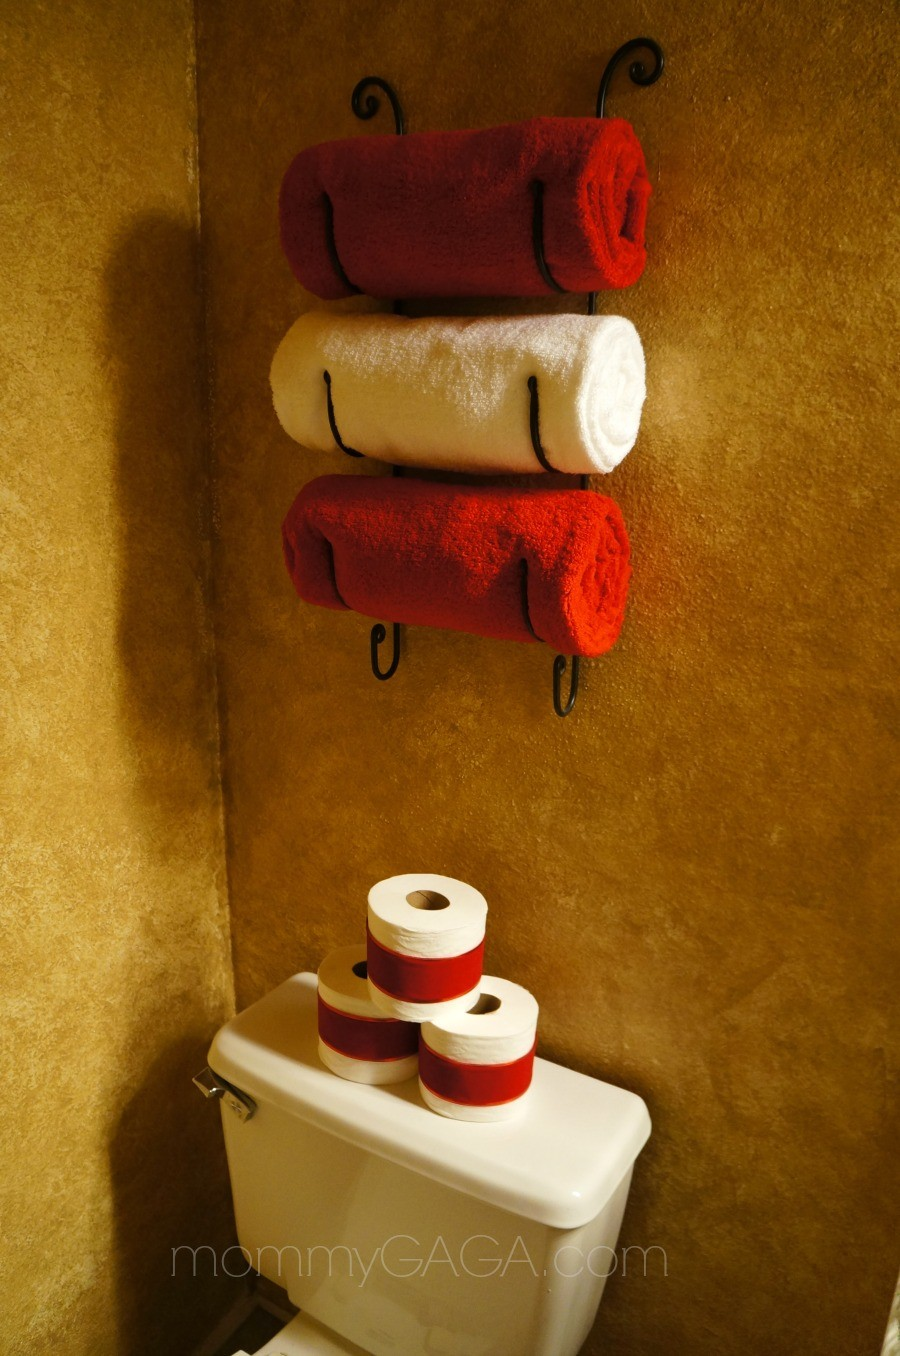 Toilet paper and towel Christmas decorations in the guest bathroom